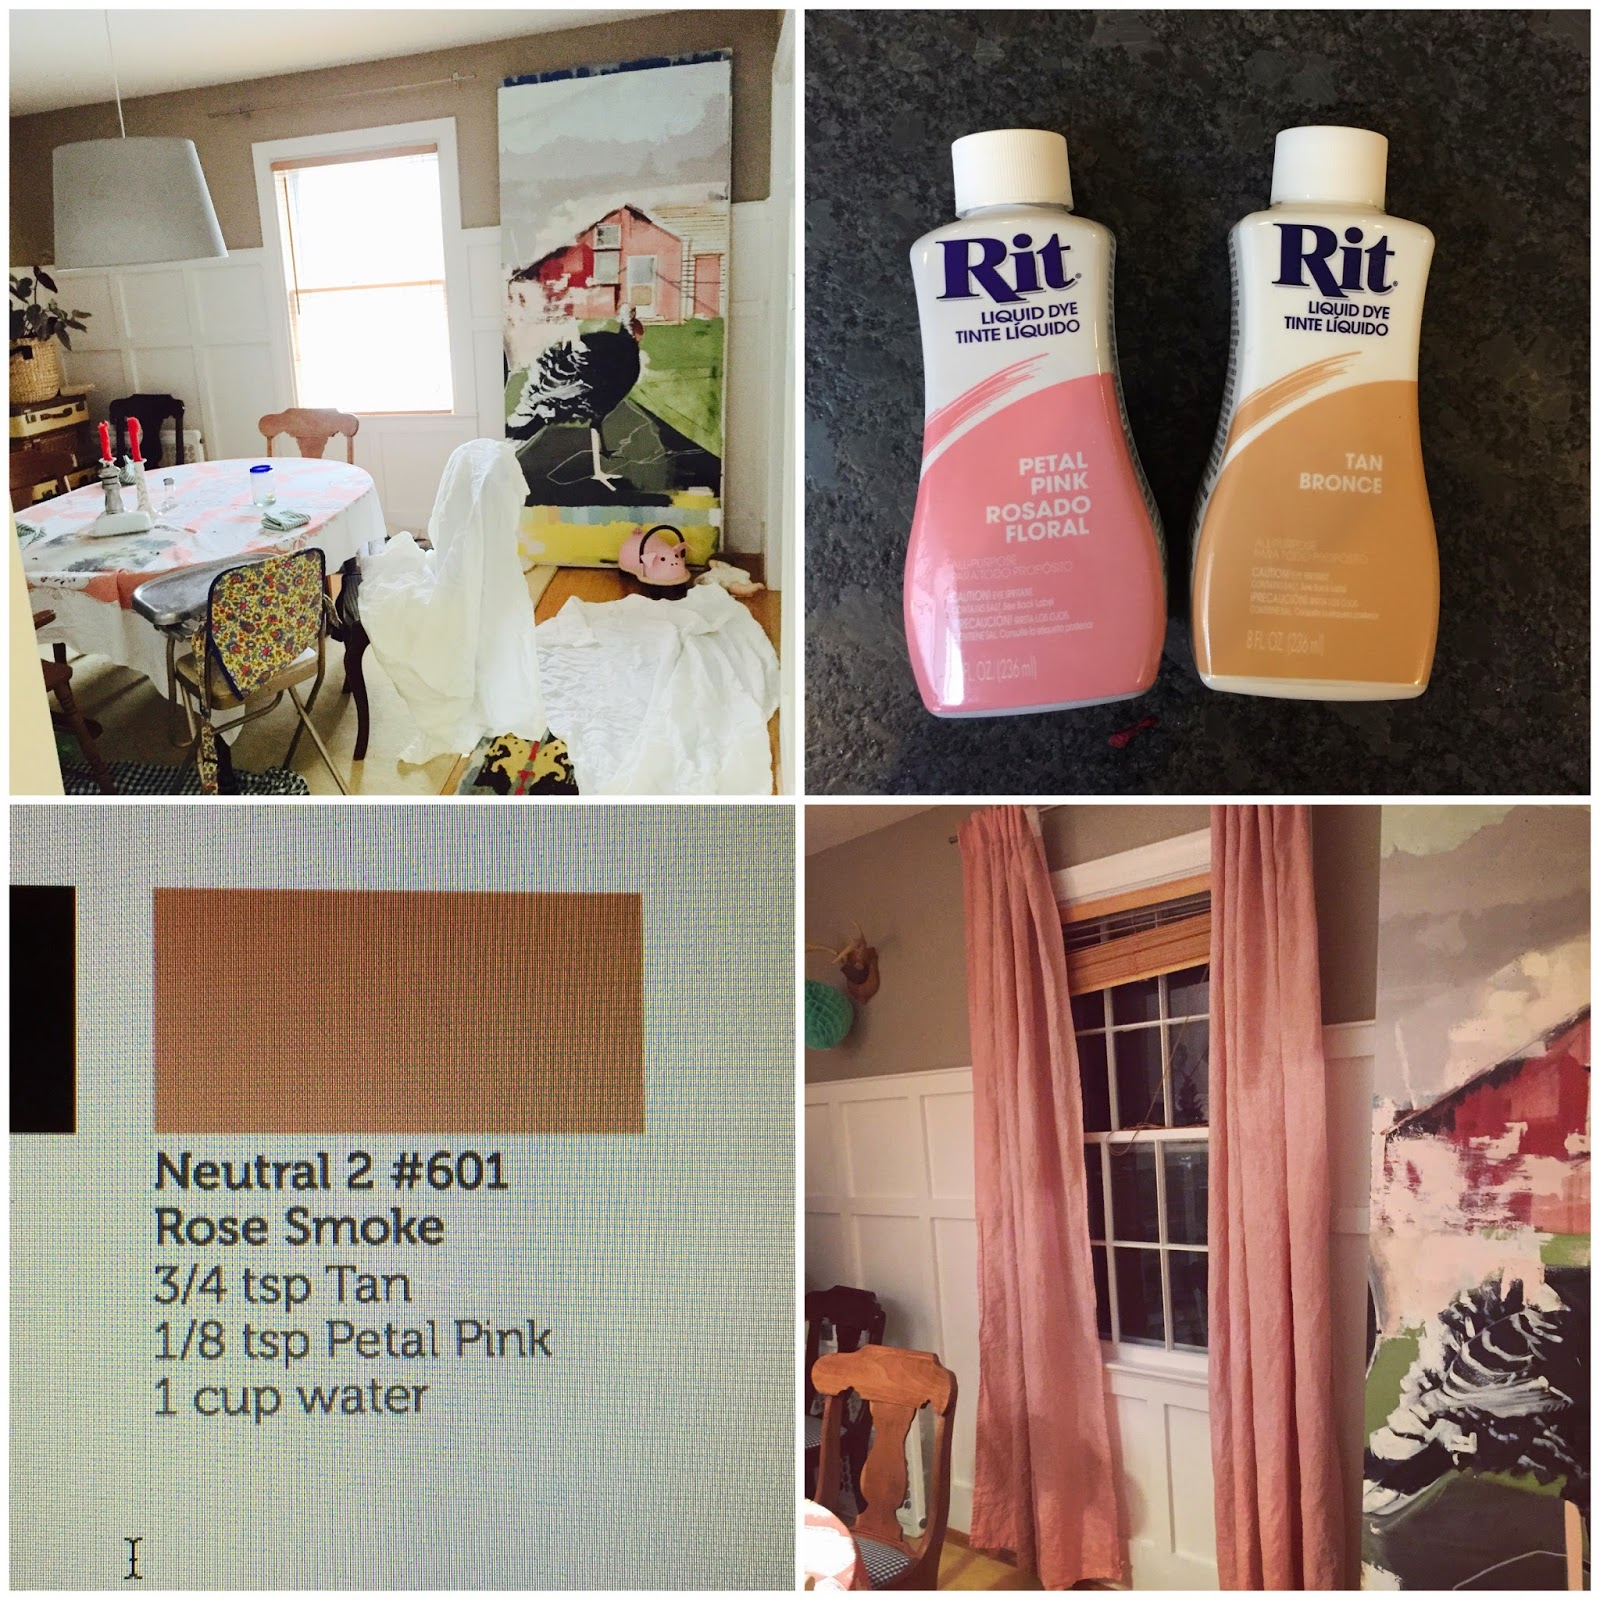 Tiptoethrough diy dyed dinging room curtains so after consulting the rit dye color chart online here i opted for rose smoke which combines petal pink and tan and i gotta say im loving the results nvjuhfo Images